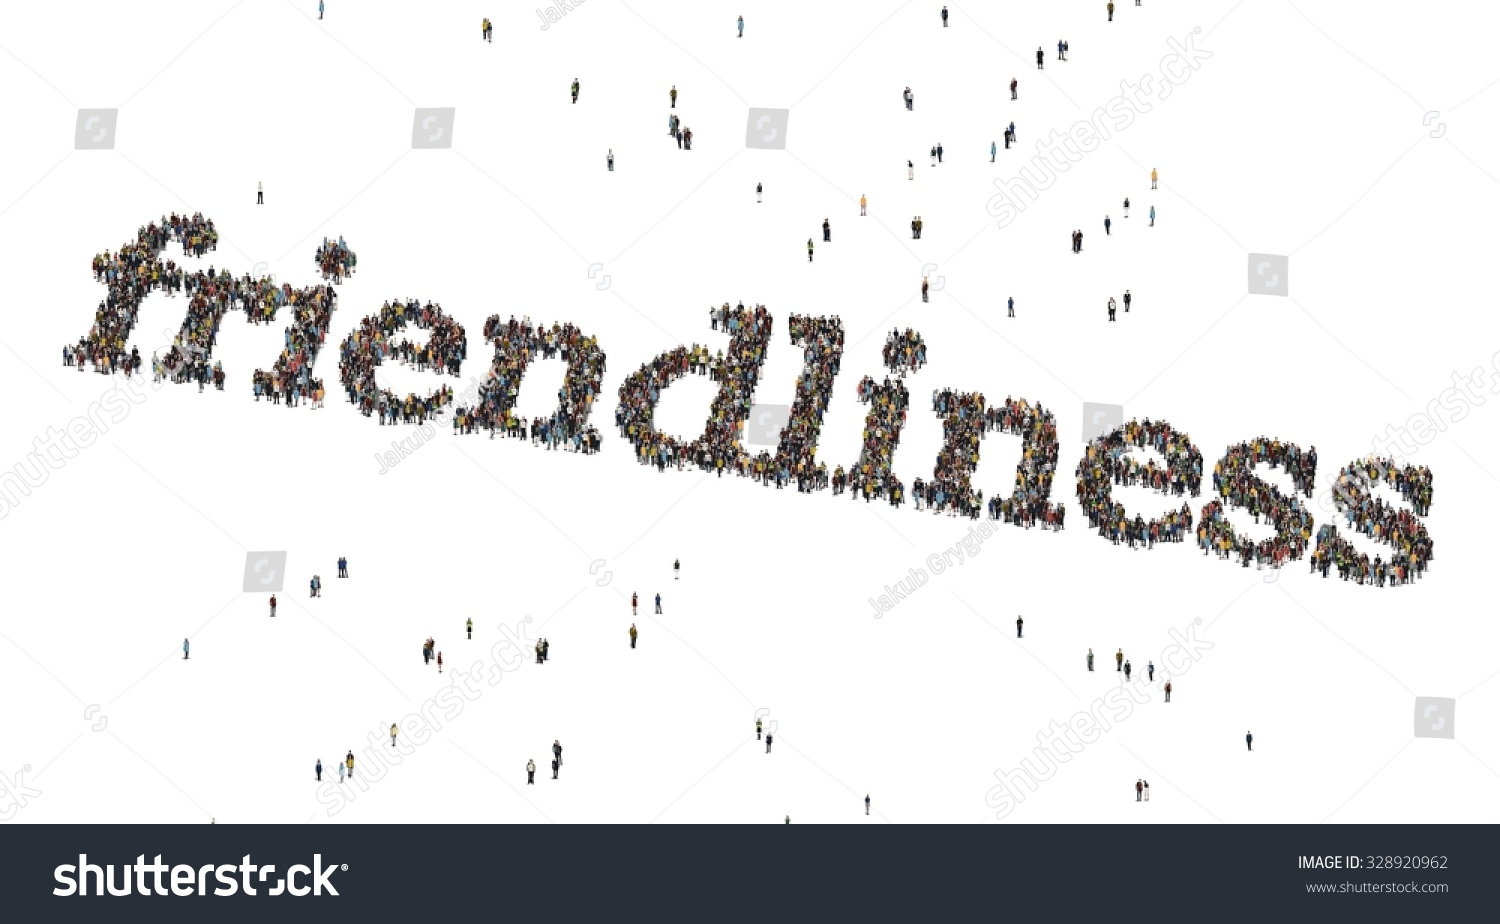 Friendliness Word Crowd Above Stock Illustration 328920962 ...